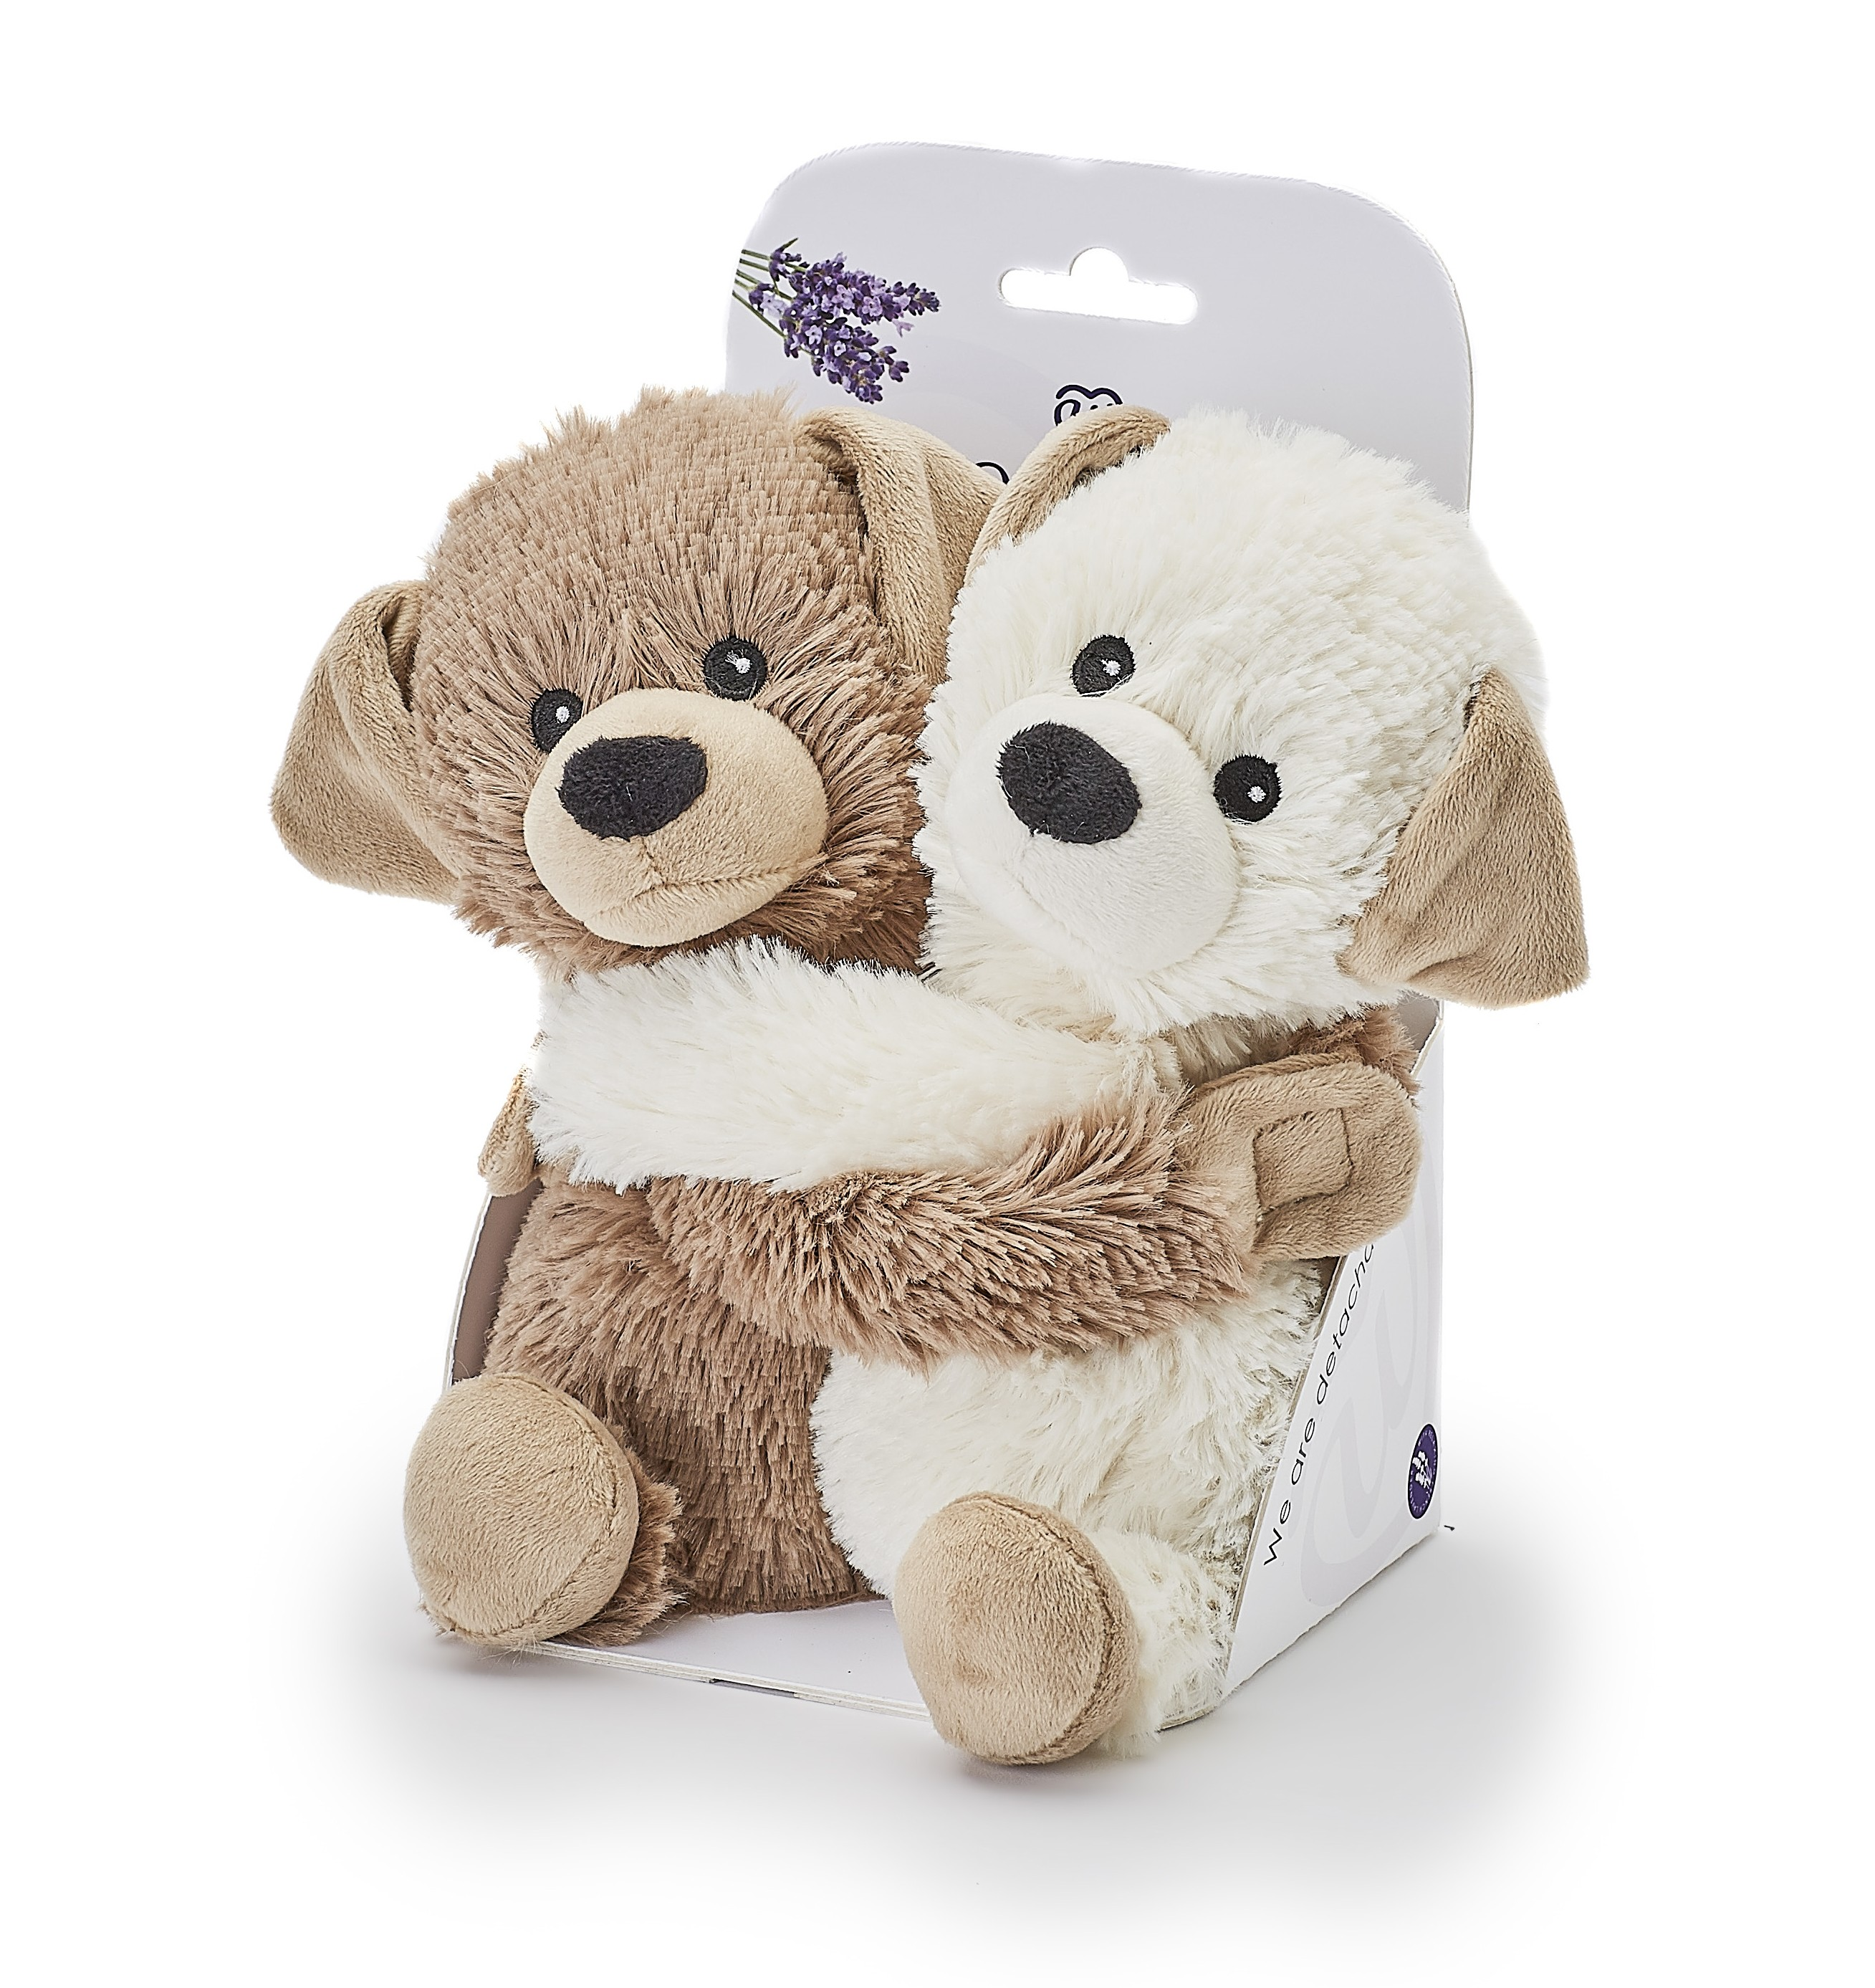 Puppy Microwaveable Hugs Toy